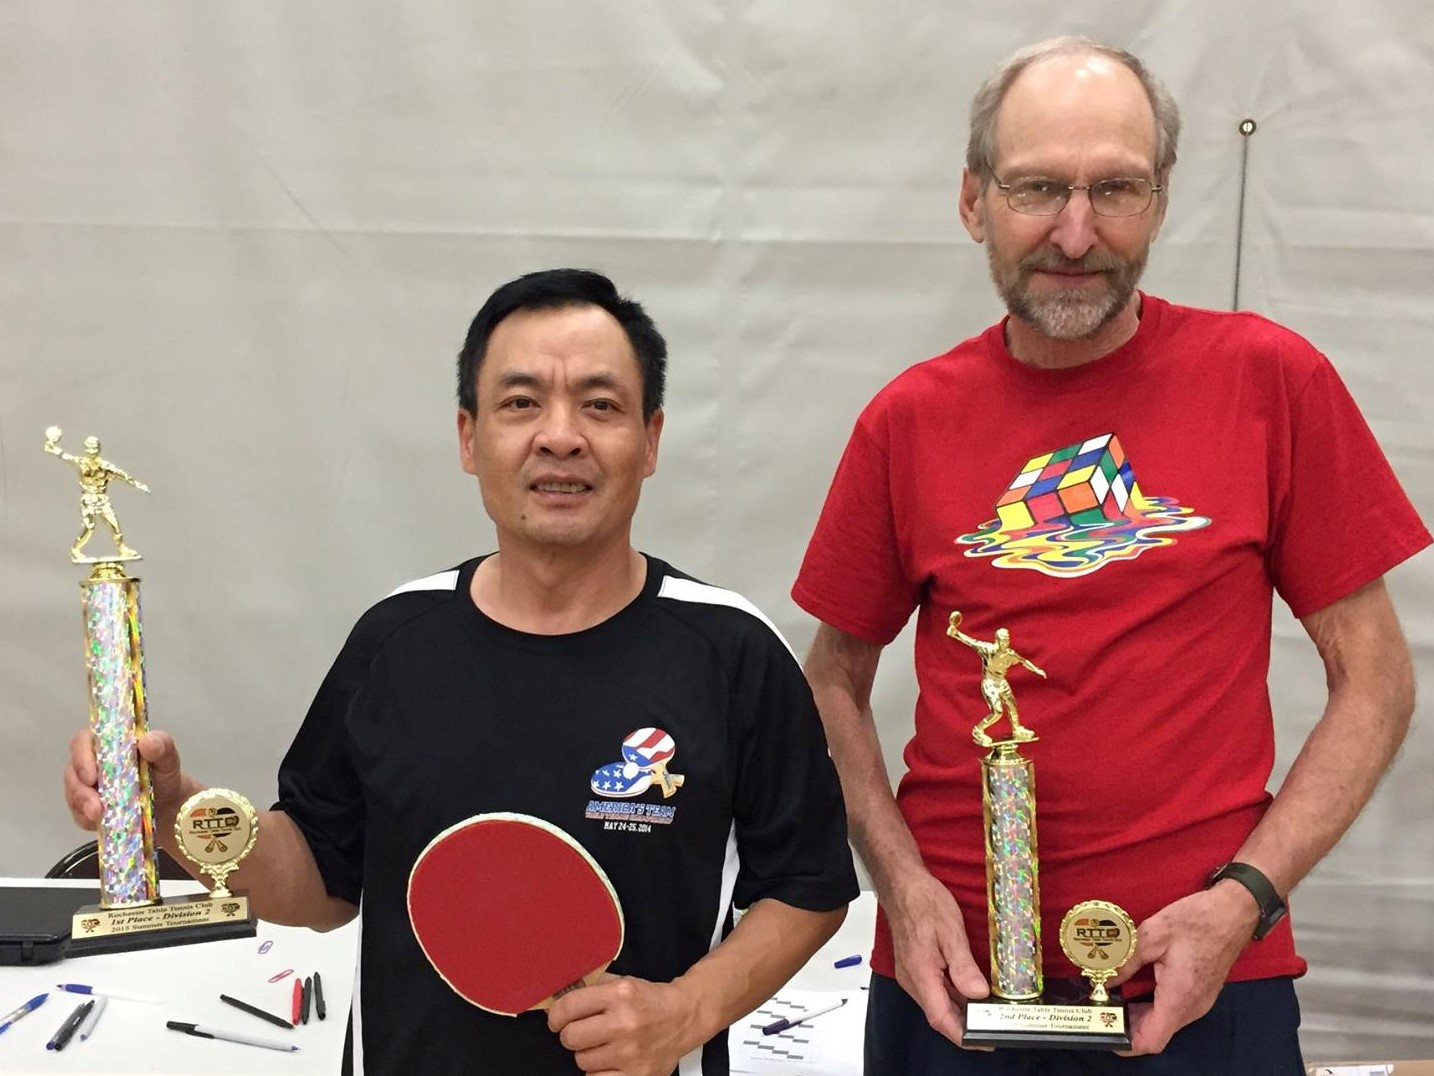 Rochester Table Tennis Club Rochester Mn